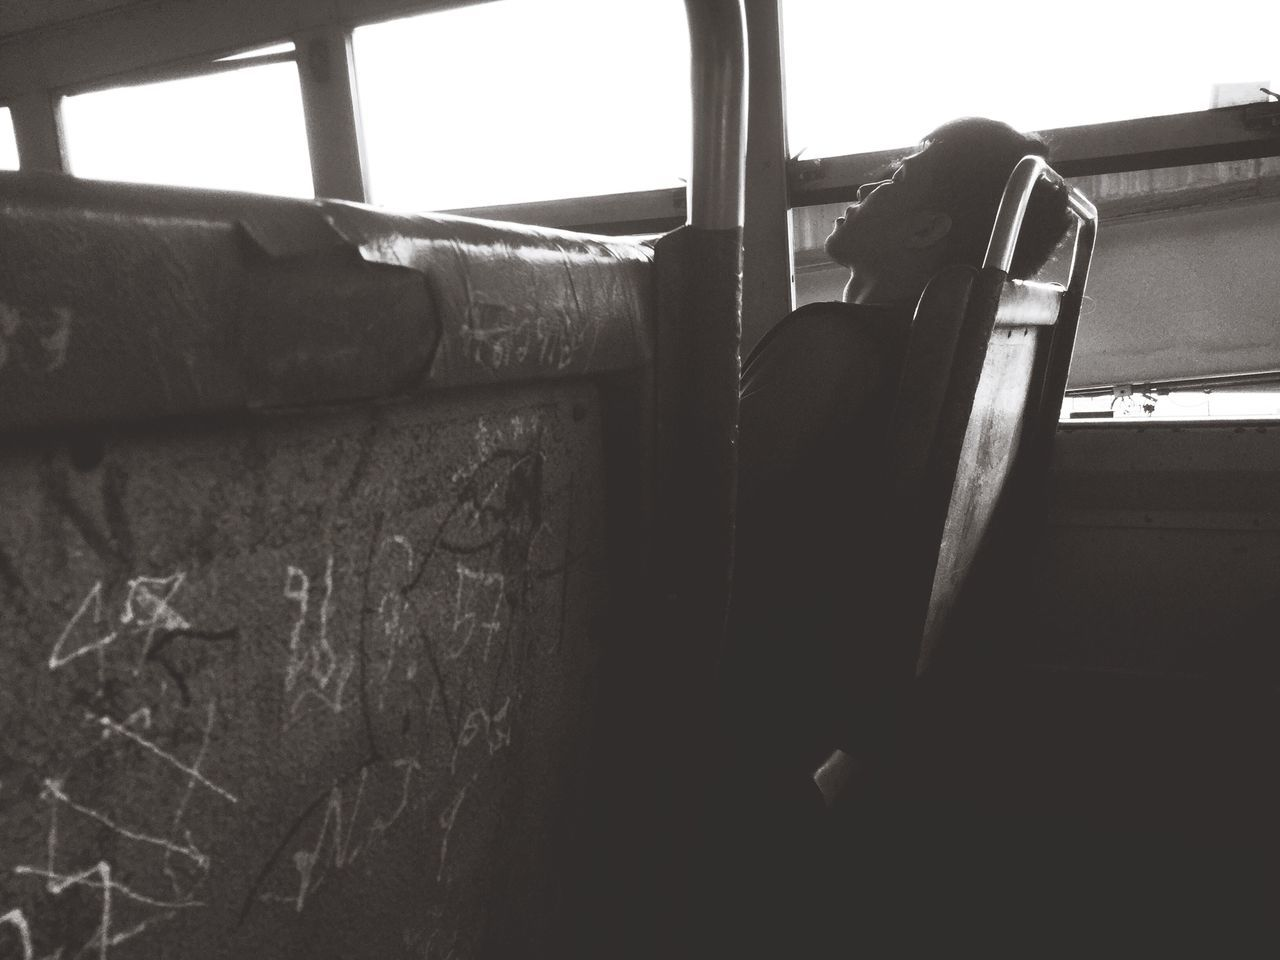 Teenager Boy Sleeping Onthebus Ontheroad Laydown Window Bus Bangkok Transportation Blackandwhite Lifestyles Asian